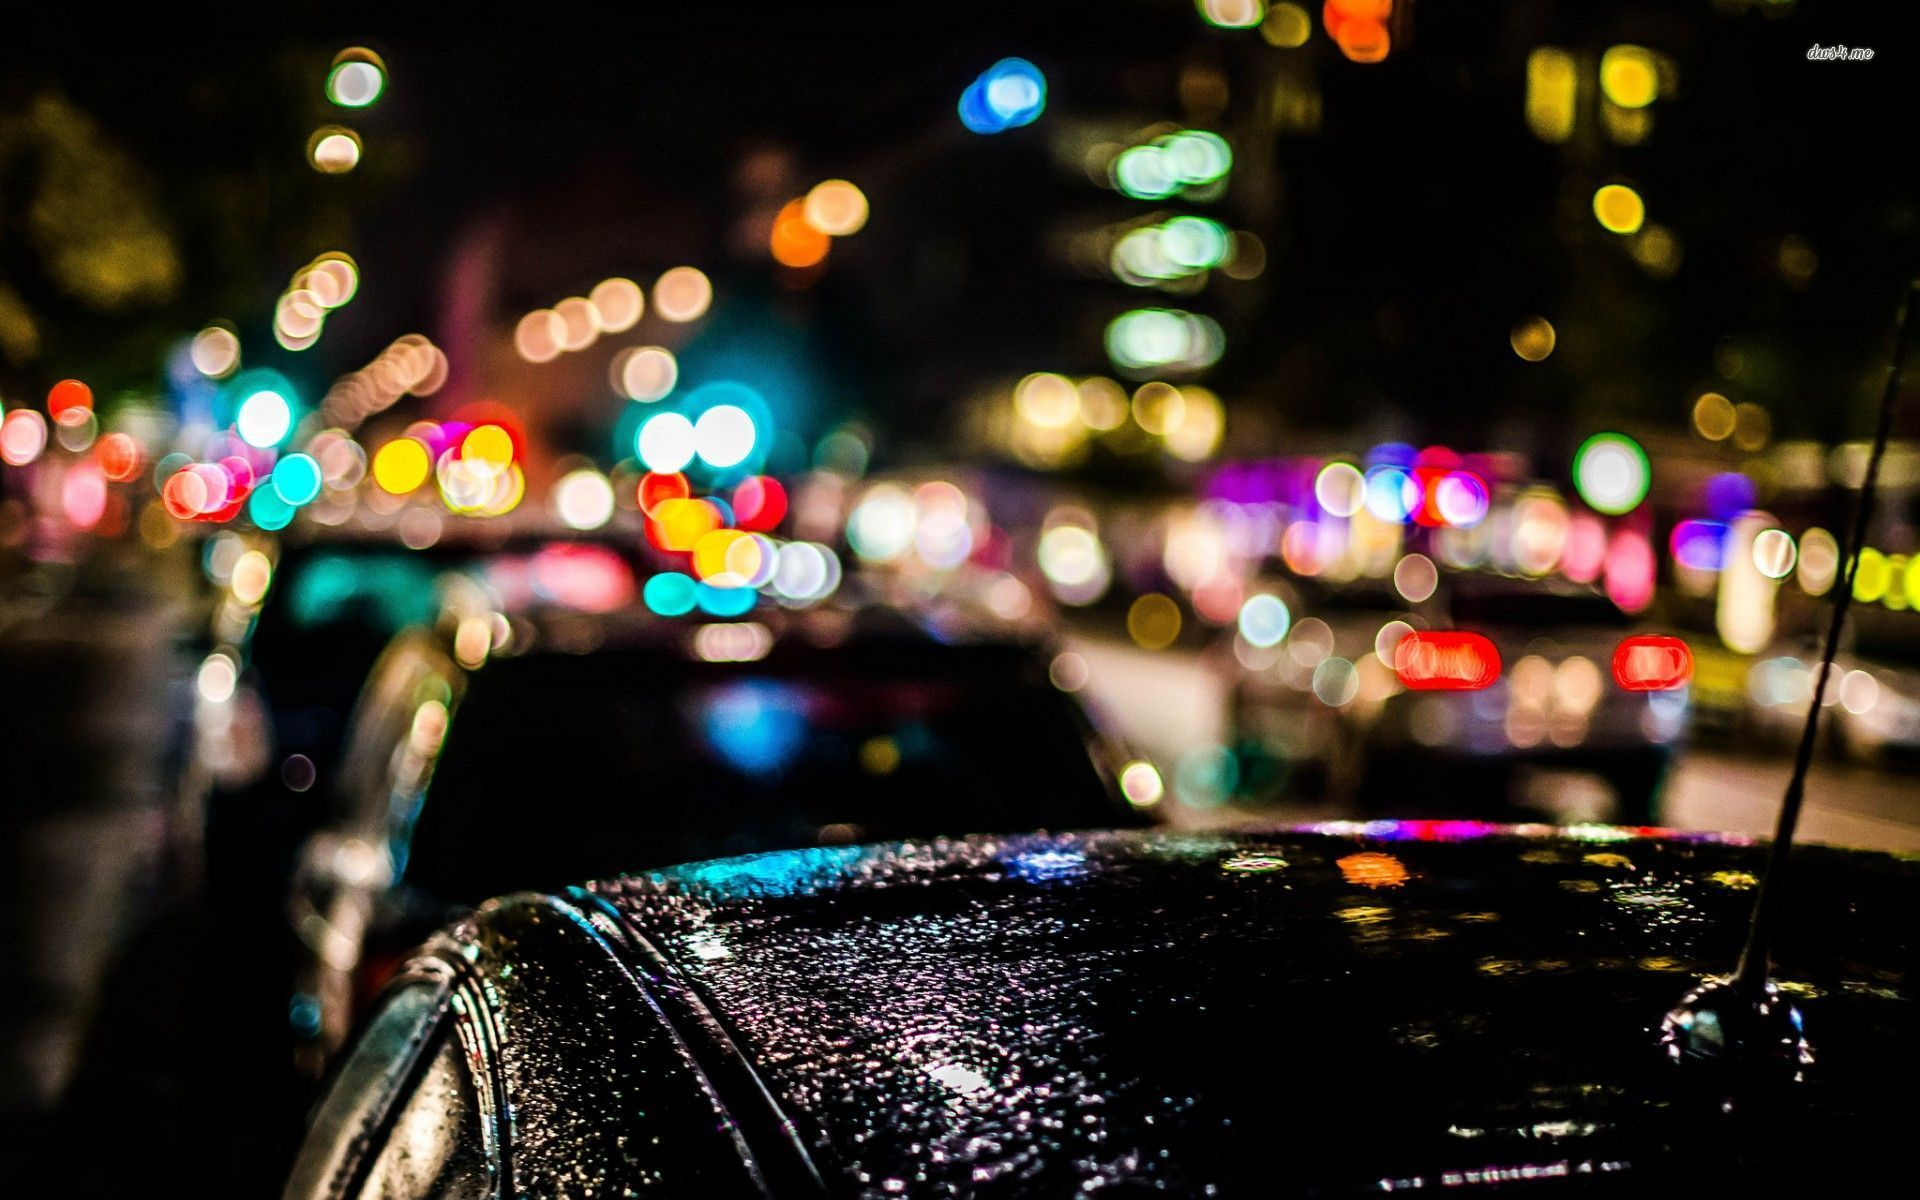 Blurry City Light Wallpaper